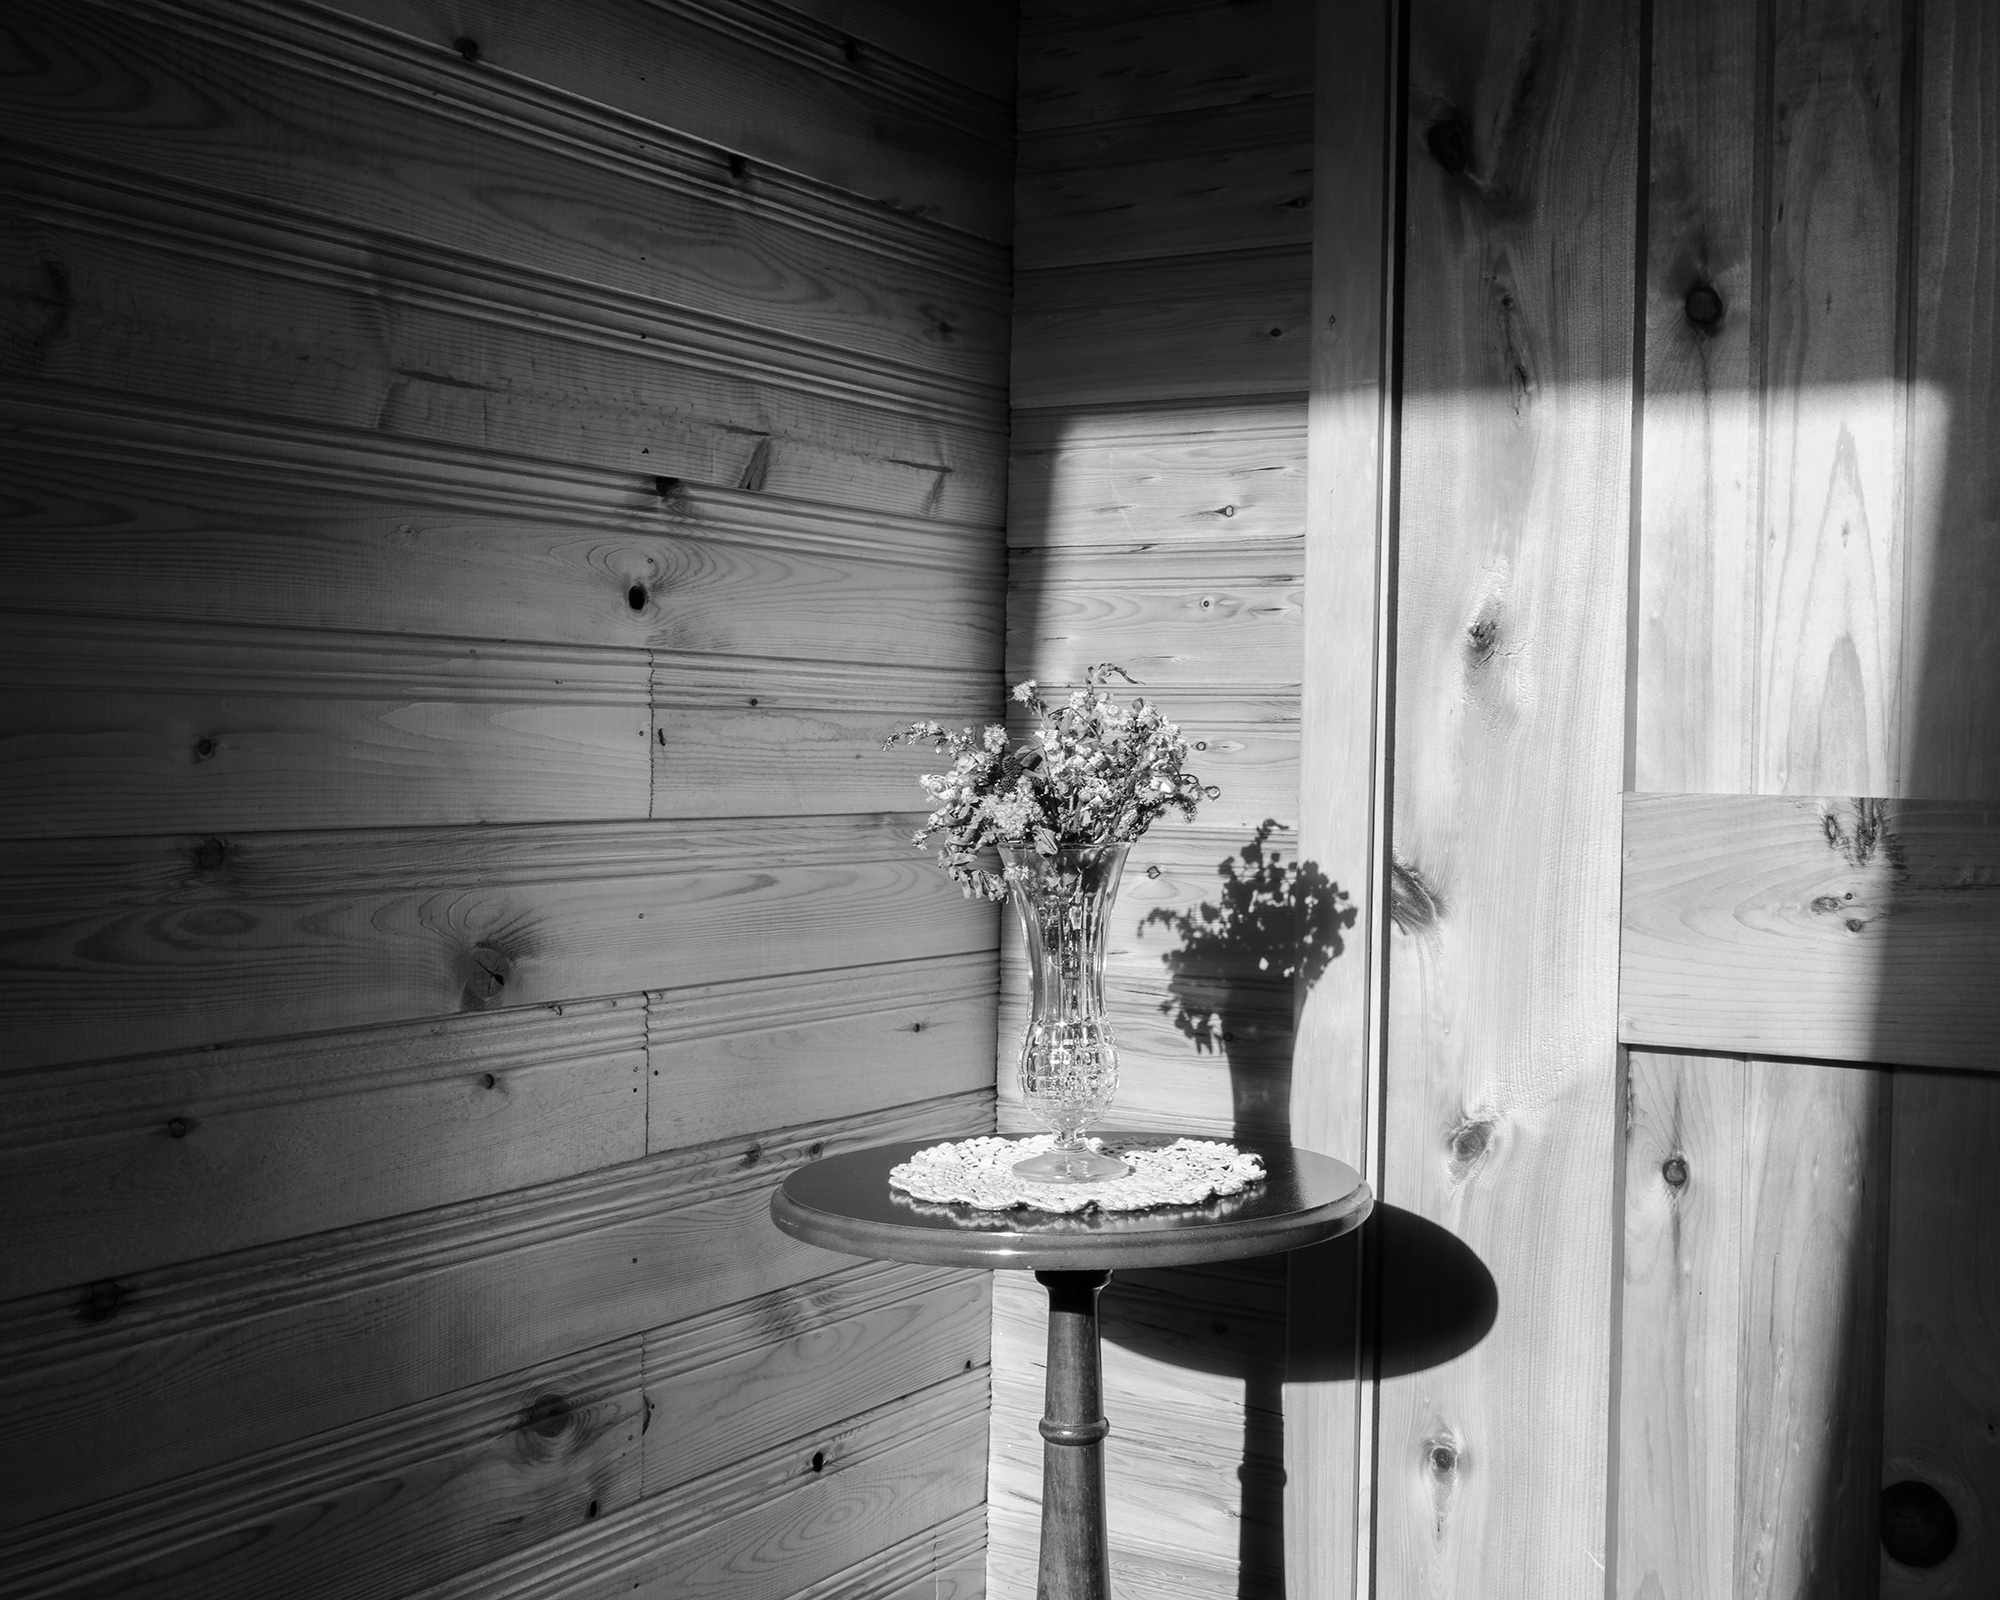 Black and White Image of the corner of a room with a flower vase on a round table.